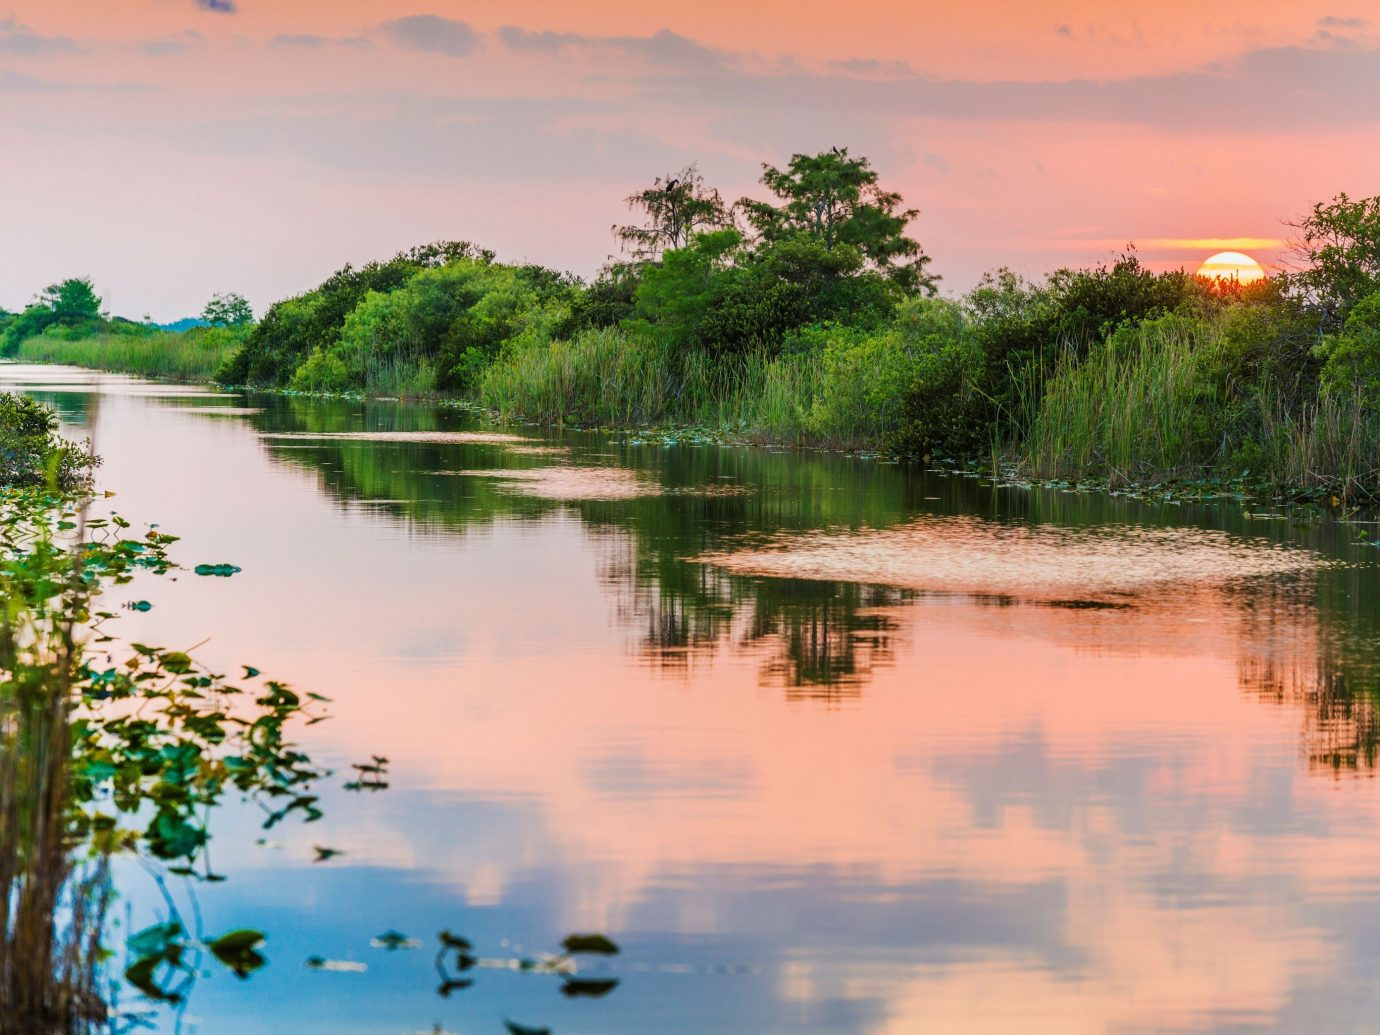 Trip Ideas water outdoor tree Nature sky River habitat reflection Lake atmospheric phenomenon natural environment wilderness body of water shore morning wetland marsh cloud surrounded loch pond landscape dawn rural area reservoir Sunset evening dusk sunrise swamp Sea several